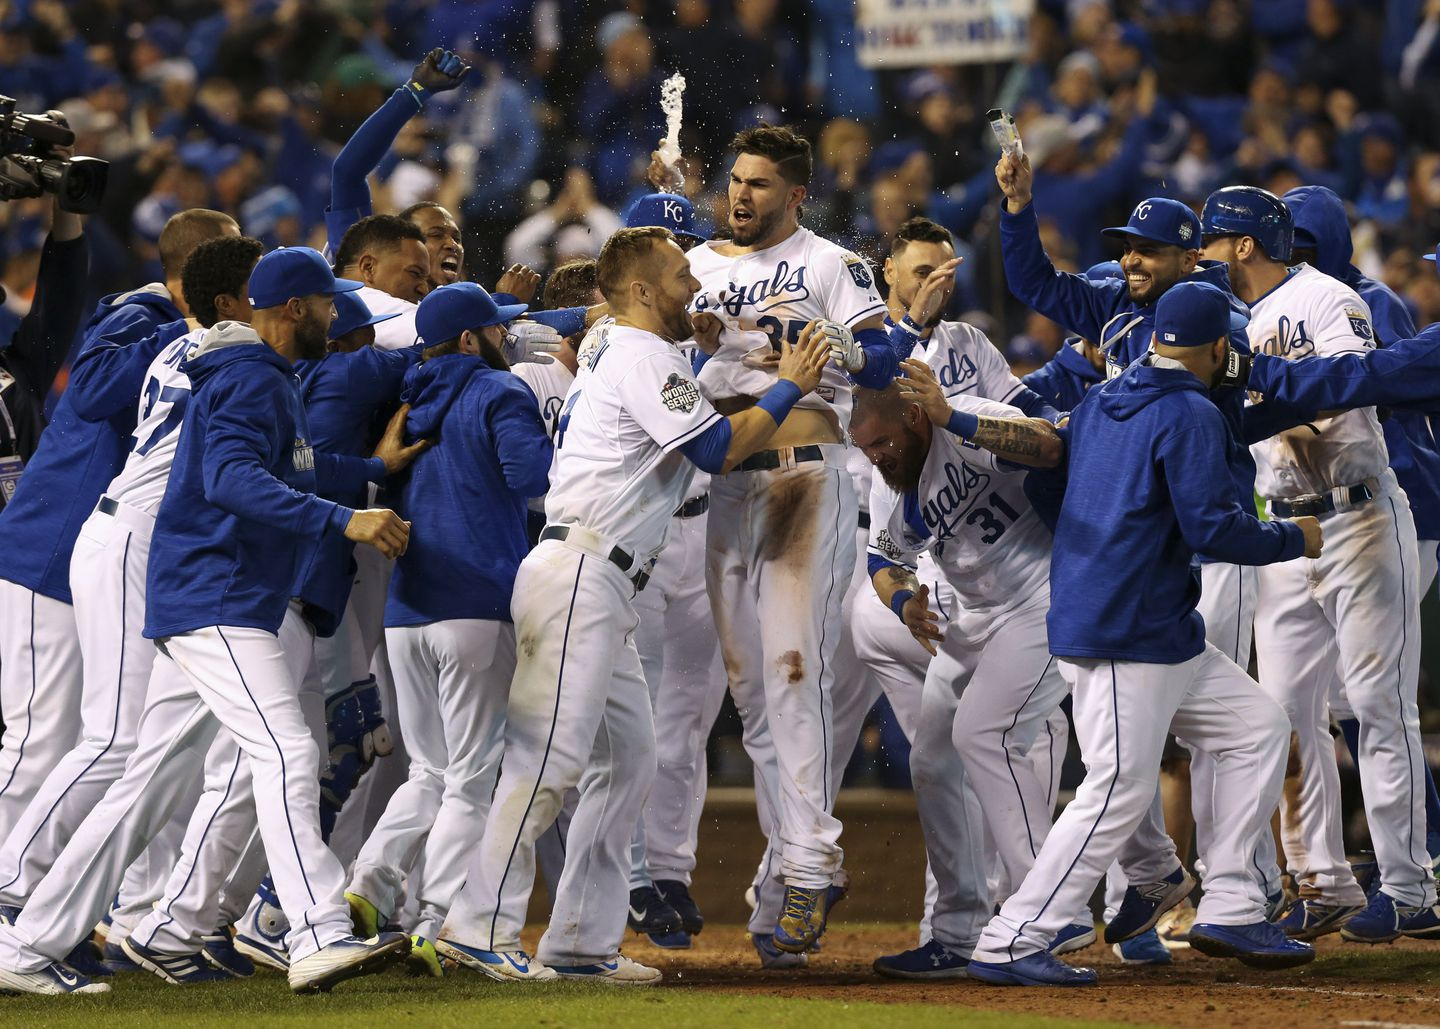 618aae8fc Eric Hosmer (35) was at the center of the celebration after his sacrifice  fly